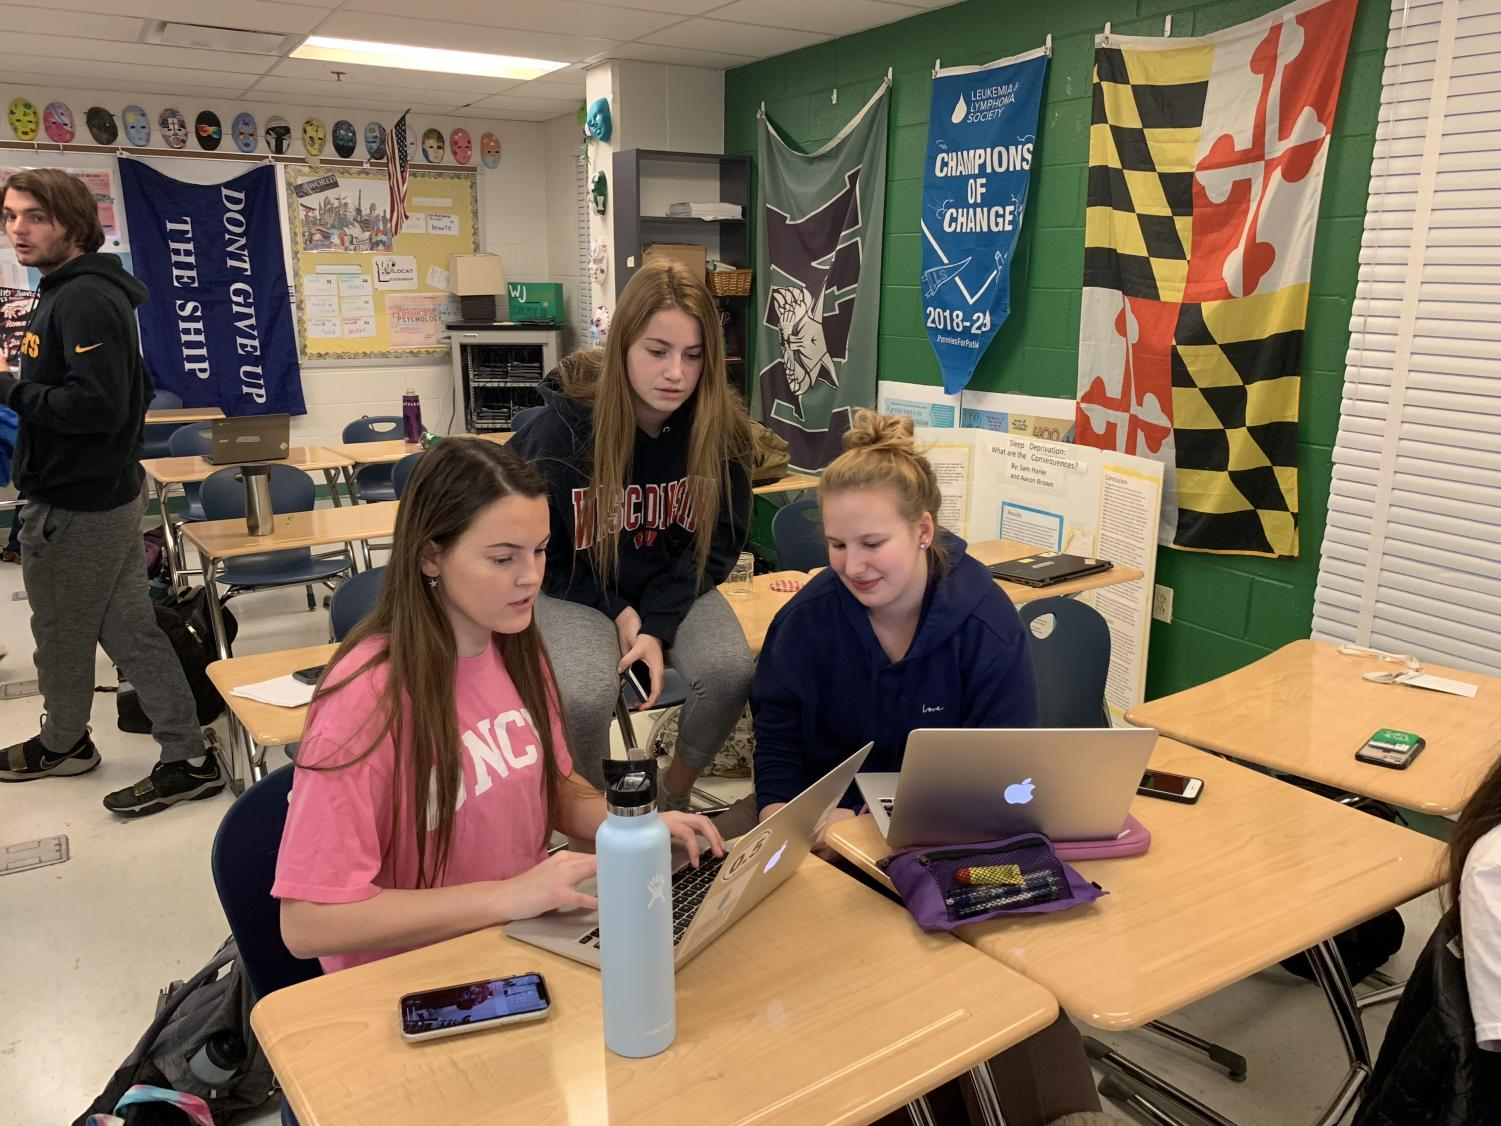 Seniors Meghan Rinehart, Geneva Smith and Leah Bregman (left to right) hard at work planning this year's Bachelors event. The fundraiser hopes to raise money for Pennies for Patients through date auctions.